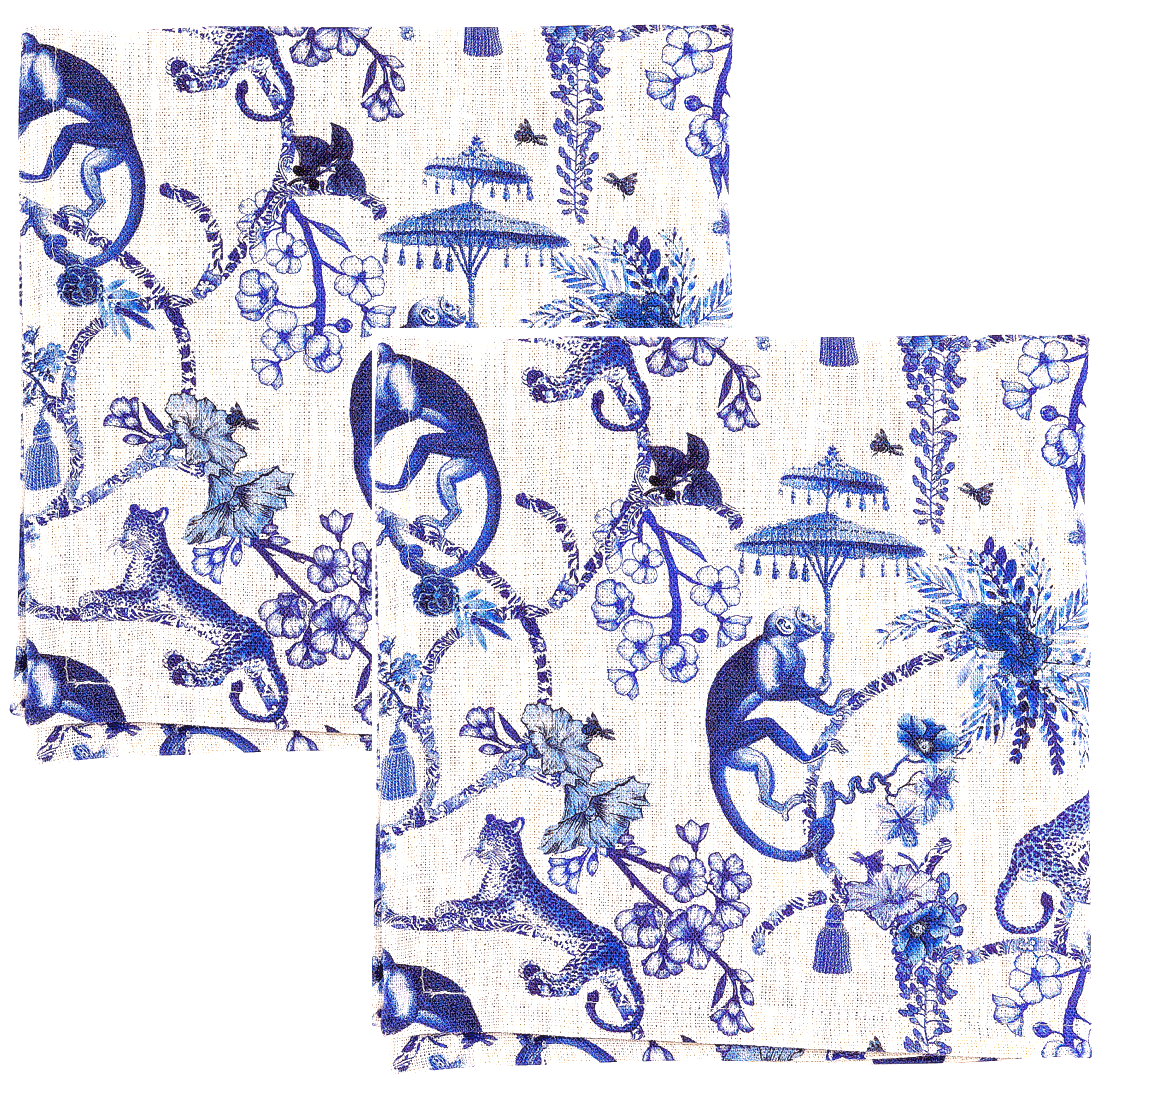 Image of Set di 2 tovaglioli in lino Blu Chinoiserie - Blue Chinoiserie linen napkins set of 2